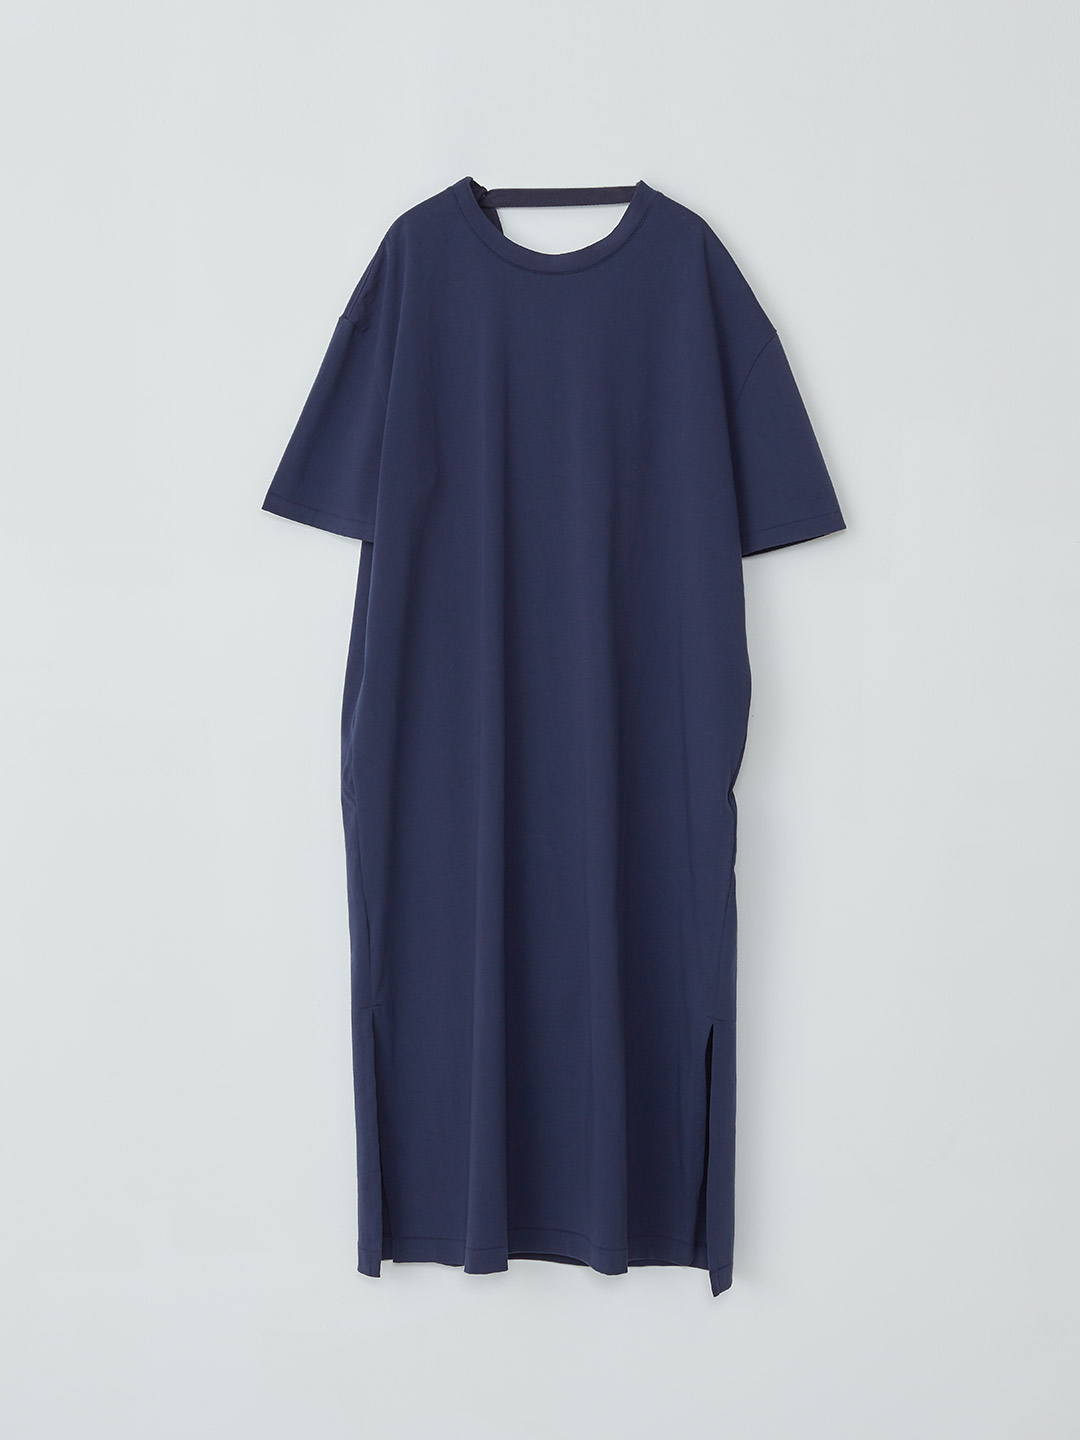 Draped Back Tee Dress - Navy【LIMITED ITEM】